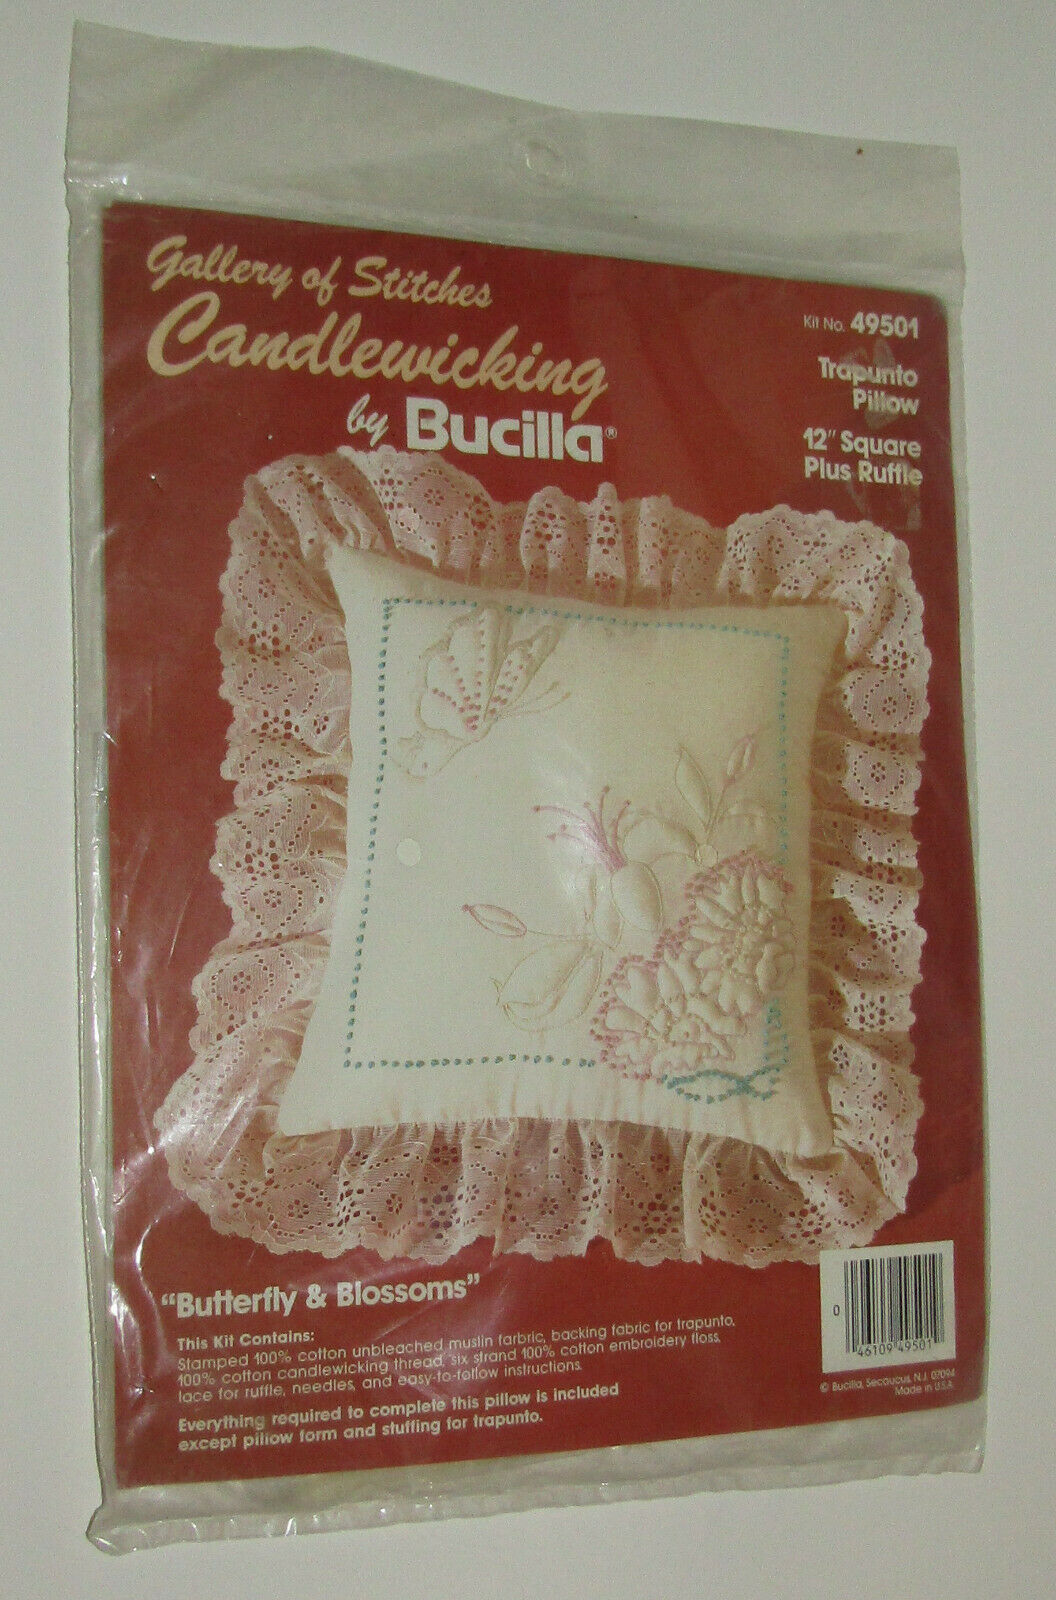 """Candlewicking Kit Butterfly Blossoms Trapunto Pillow 12"""" Square Plus Ruffle New - $14.54"""